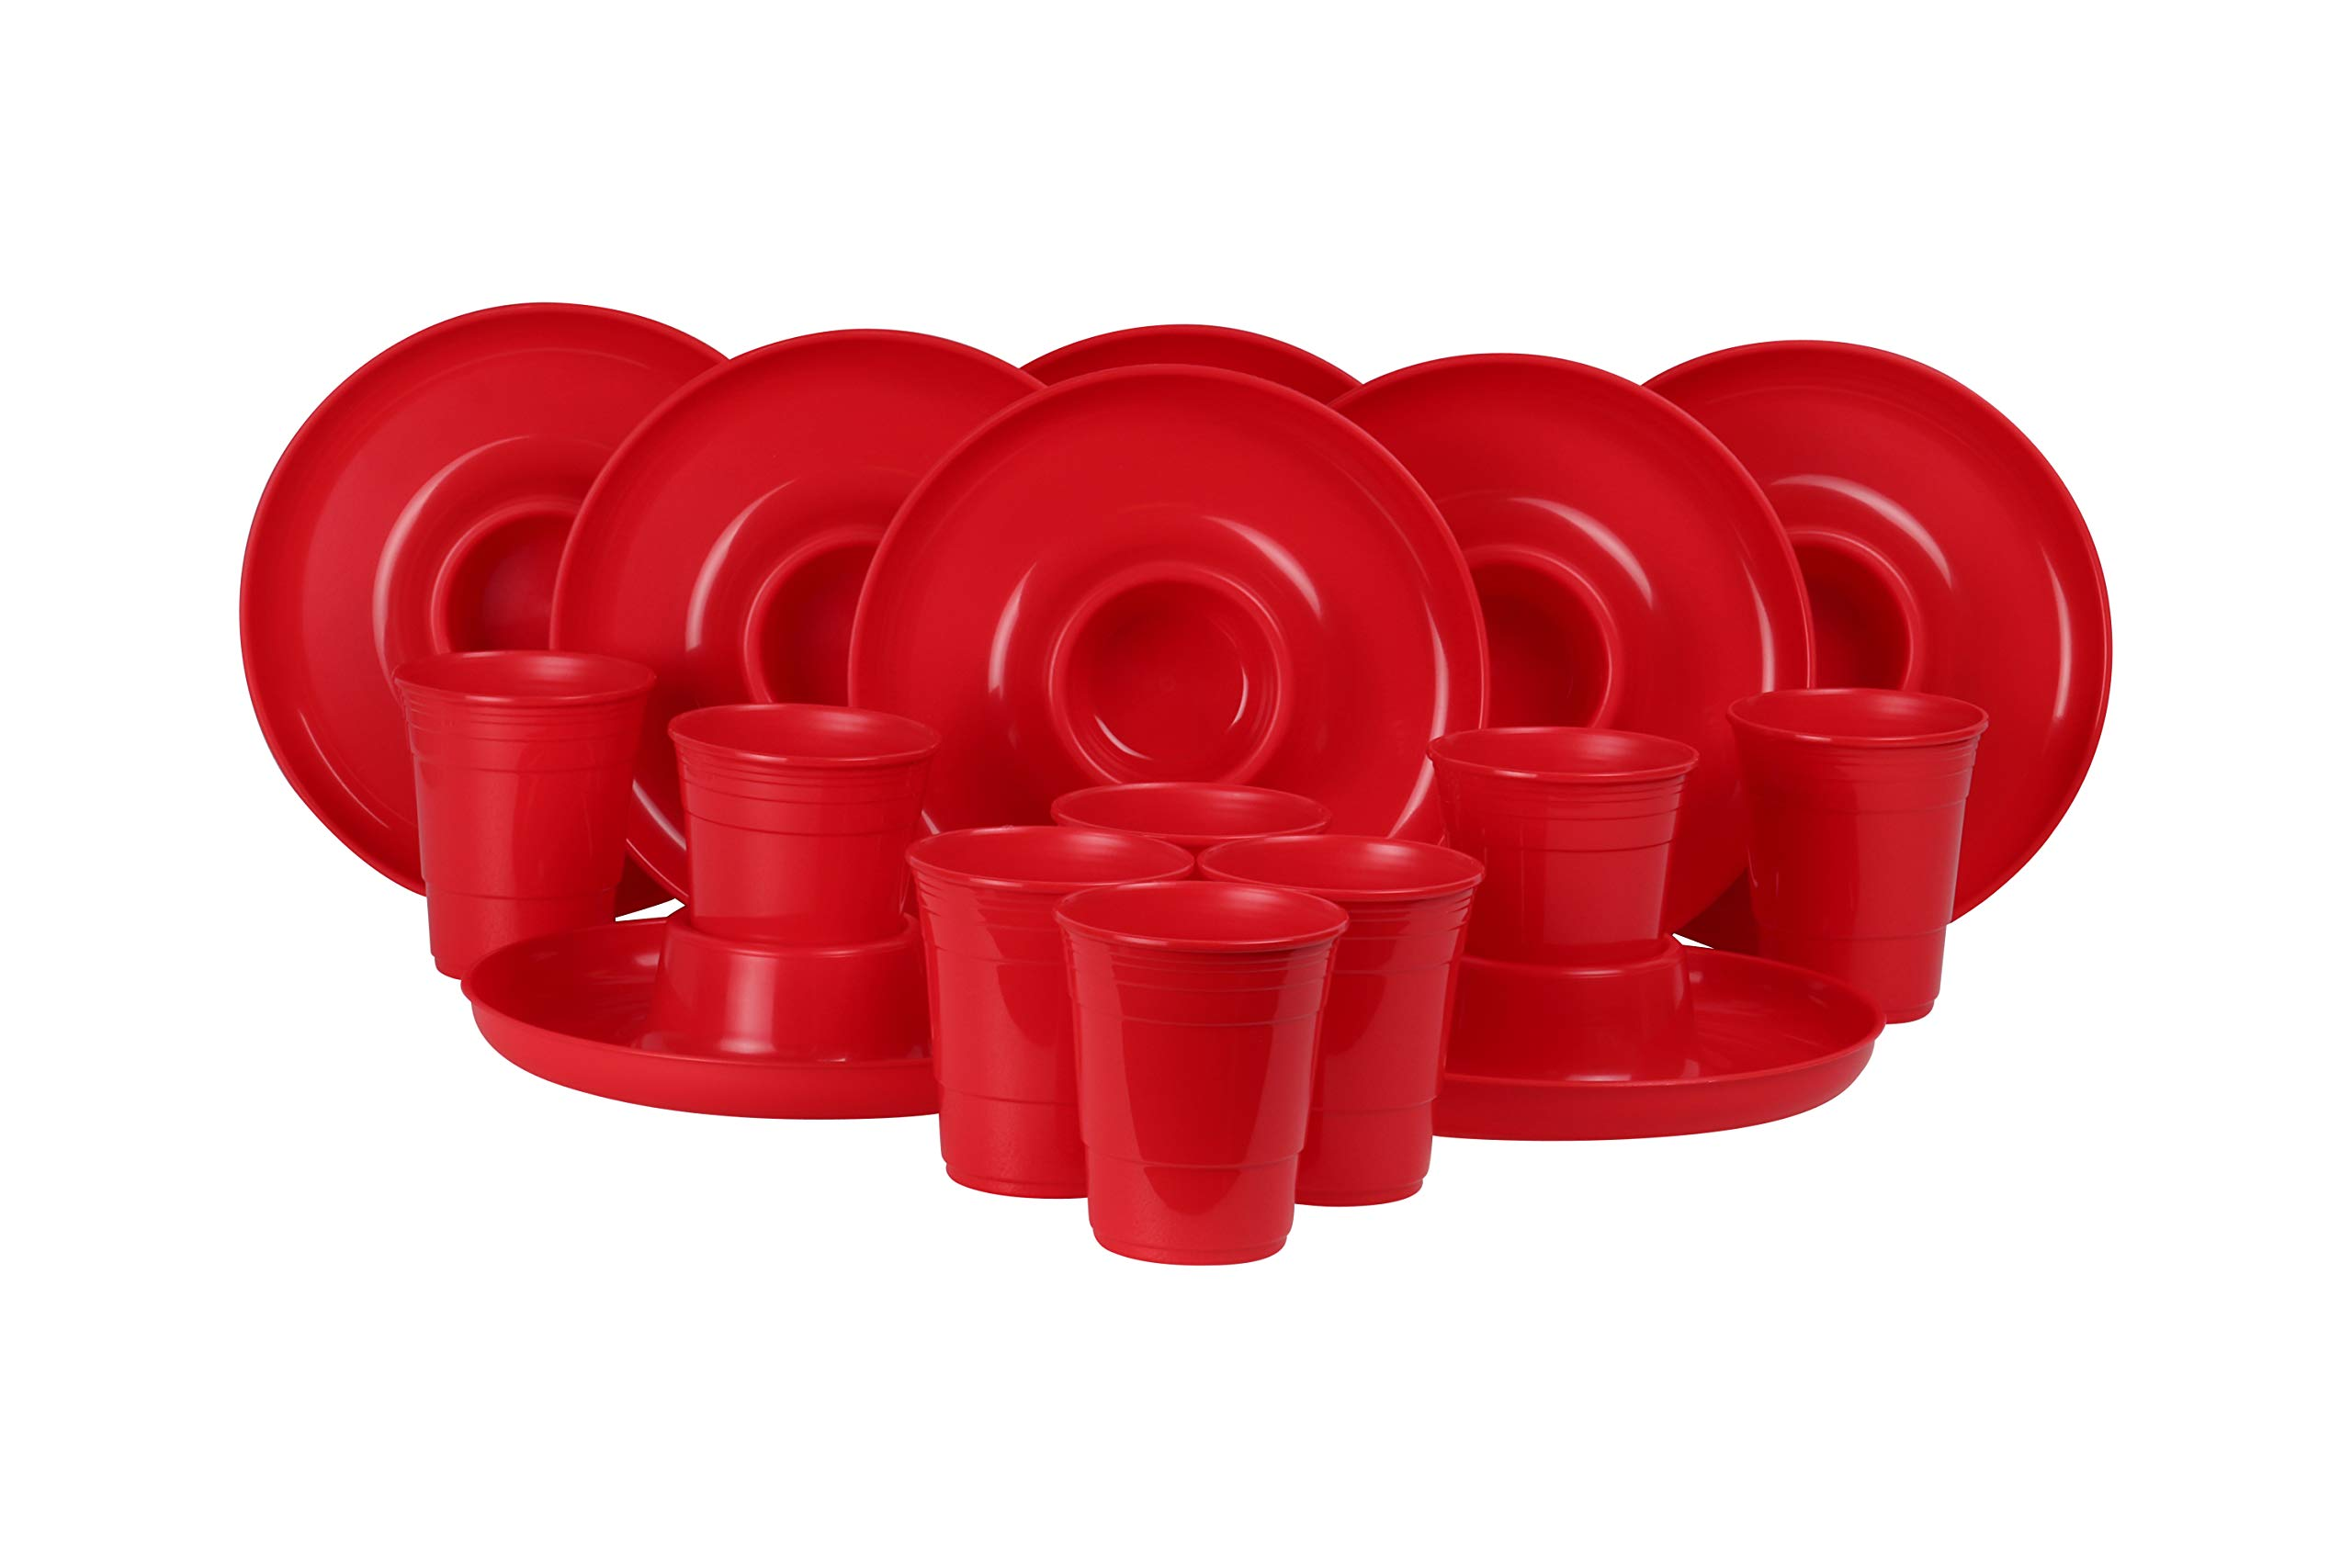 GreatPlate GP-GCP-RED-8x8AZ Red Combo Pack, 8 Red GreatPlates, Food Tray and Beverage Holder, 8 Red GreatCups, Dishwasher Safe, Microwave Safe, Made in USA, Picnics, Parties, Tailgates, Appetizers, Great for Kids